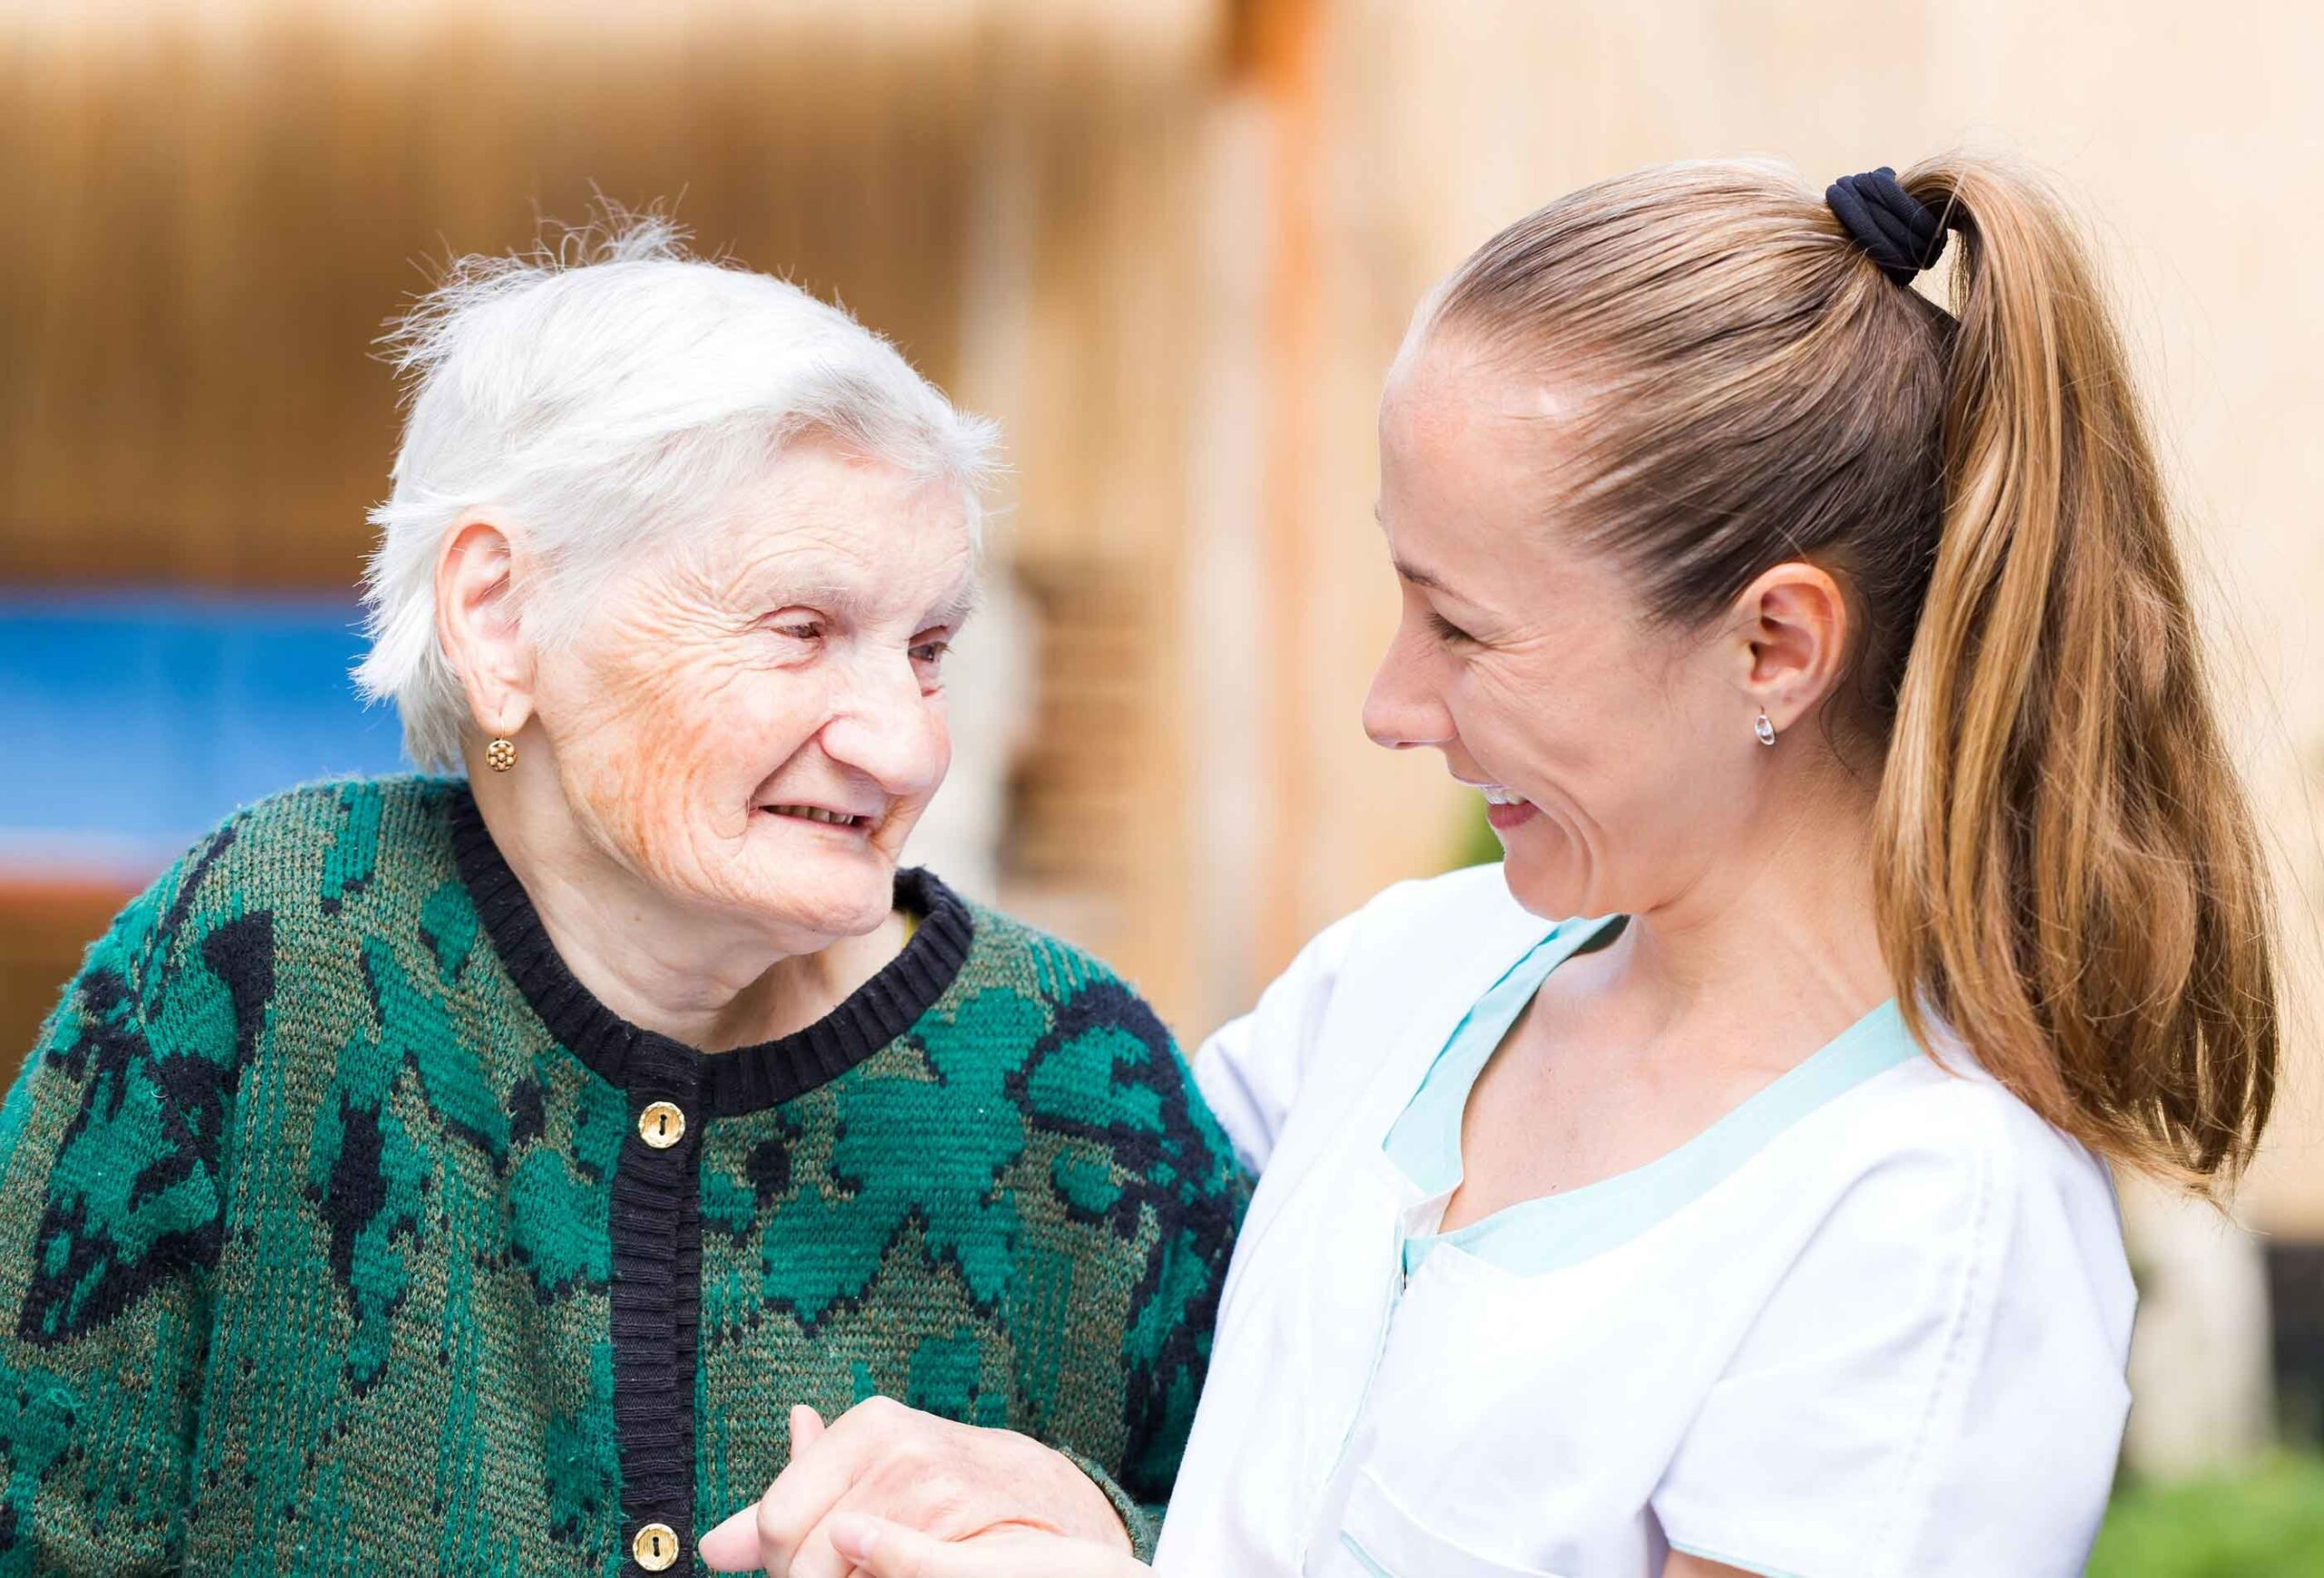 How to Communicate with Your Loved One's Assisted Living Staff?